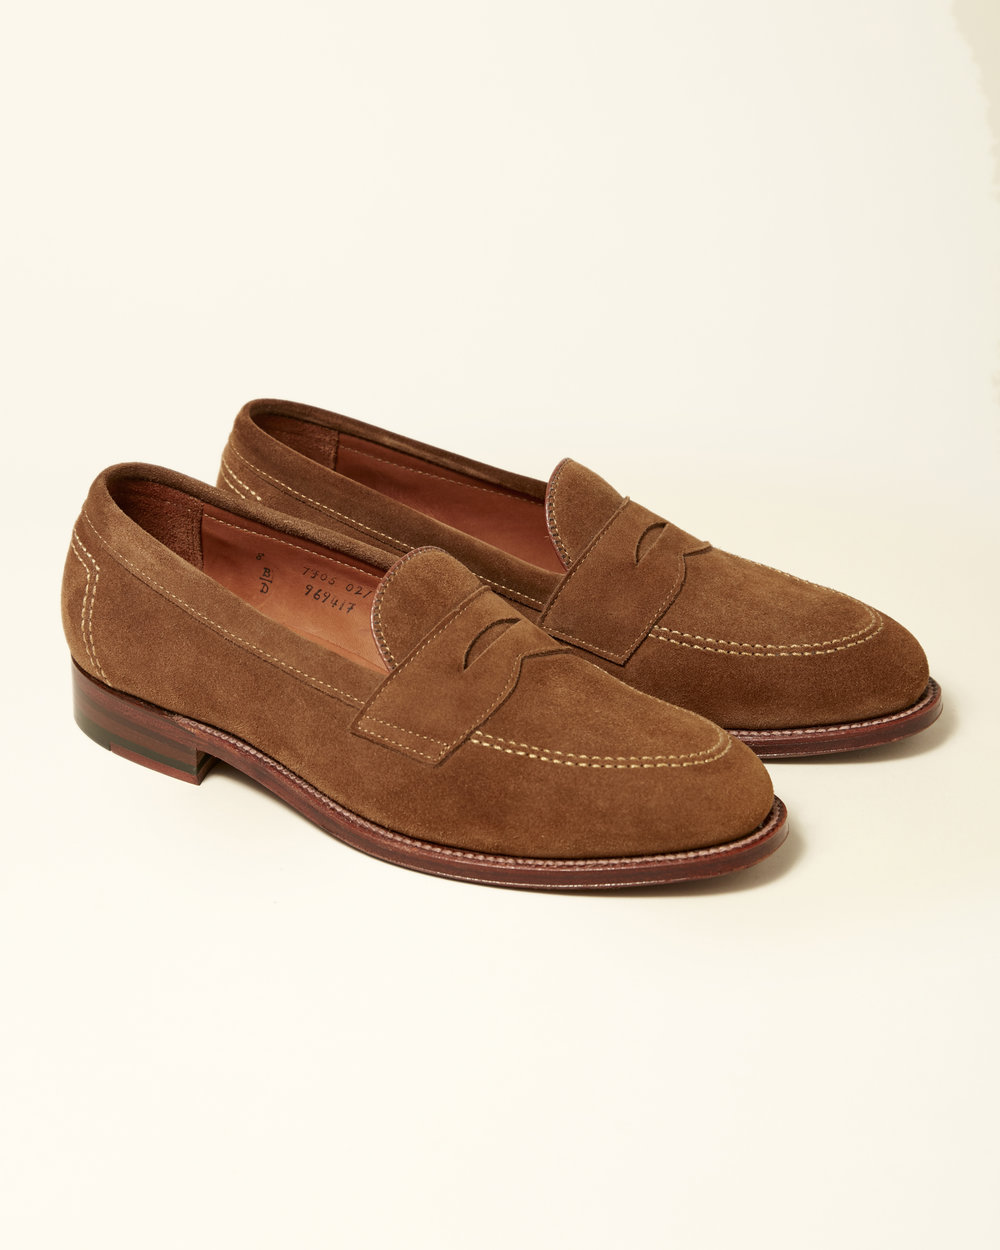 497f1df8306 Snuff Suede Penny Loafer — Brick + Mortar